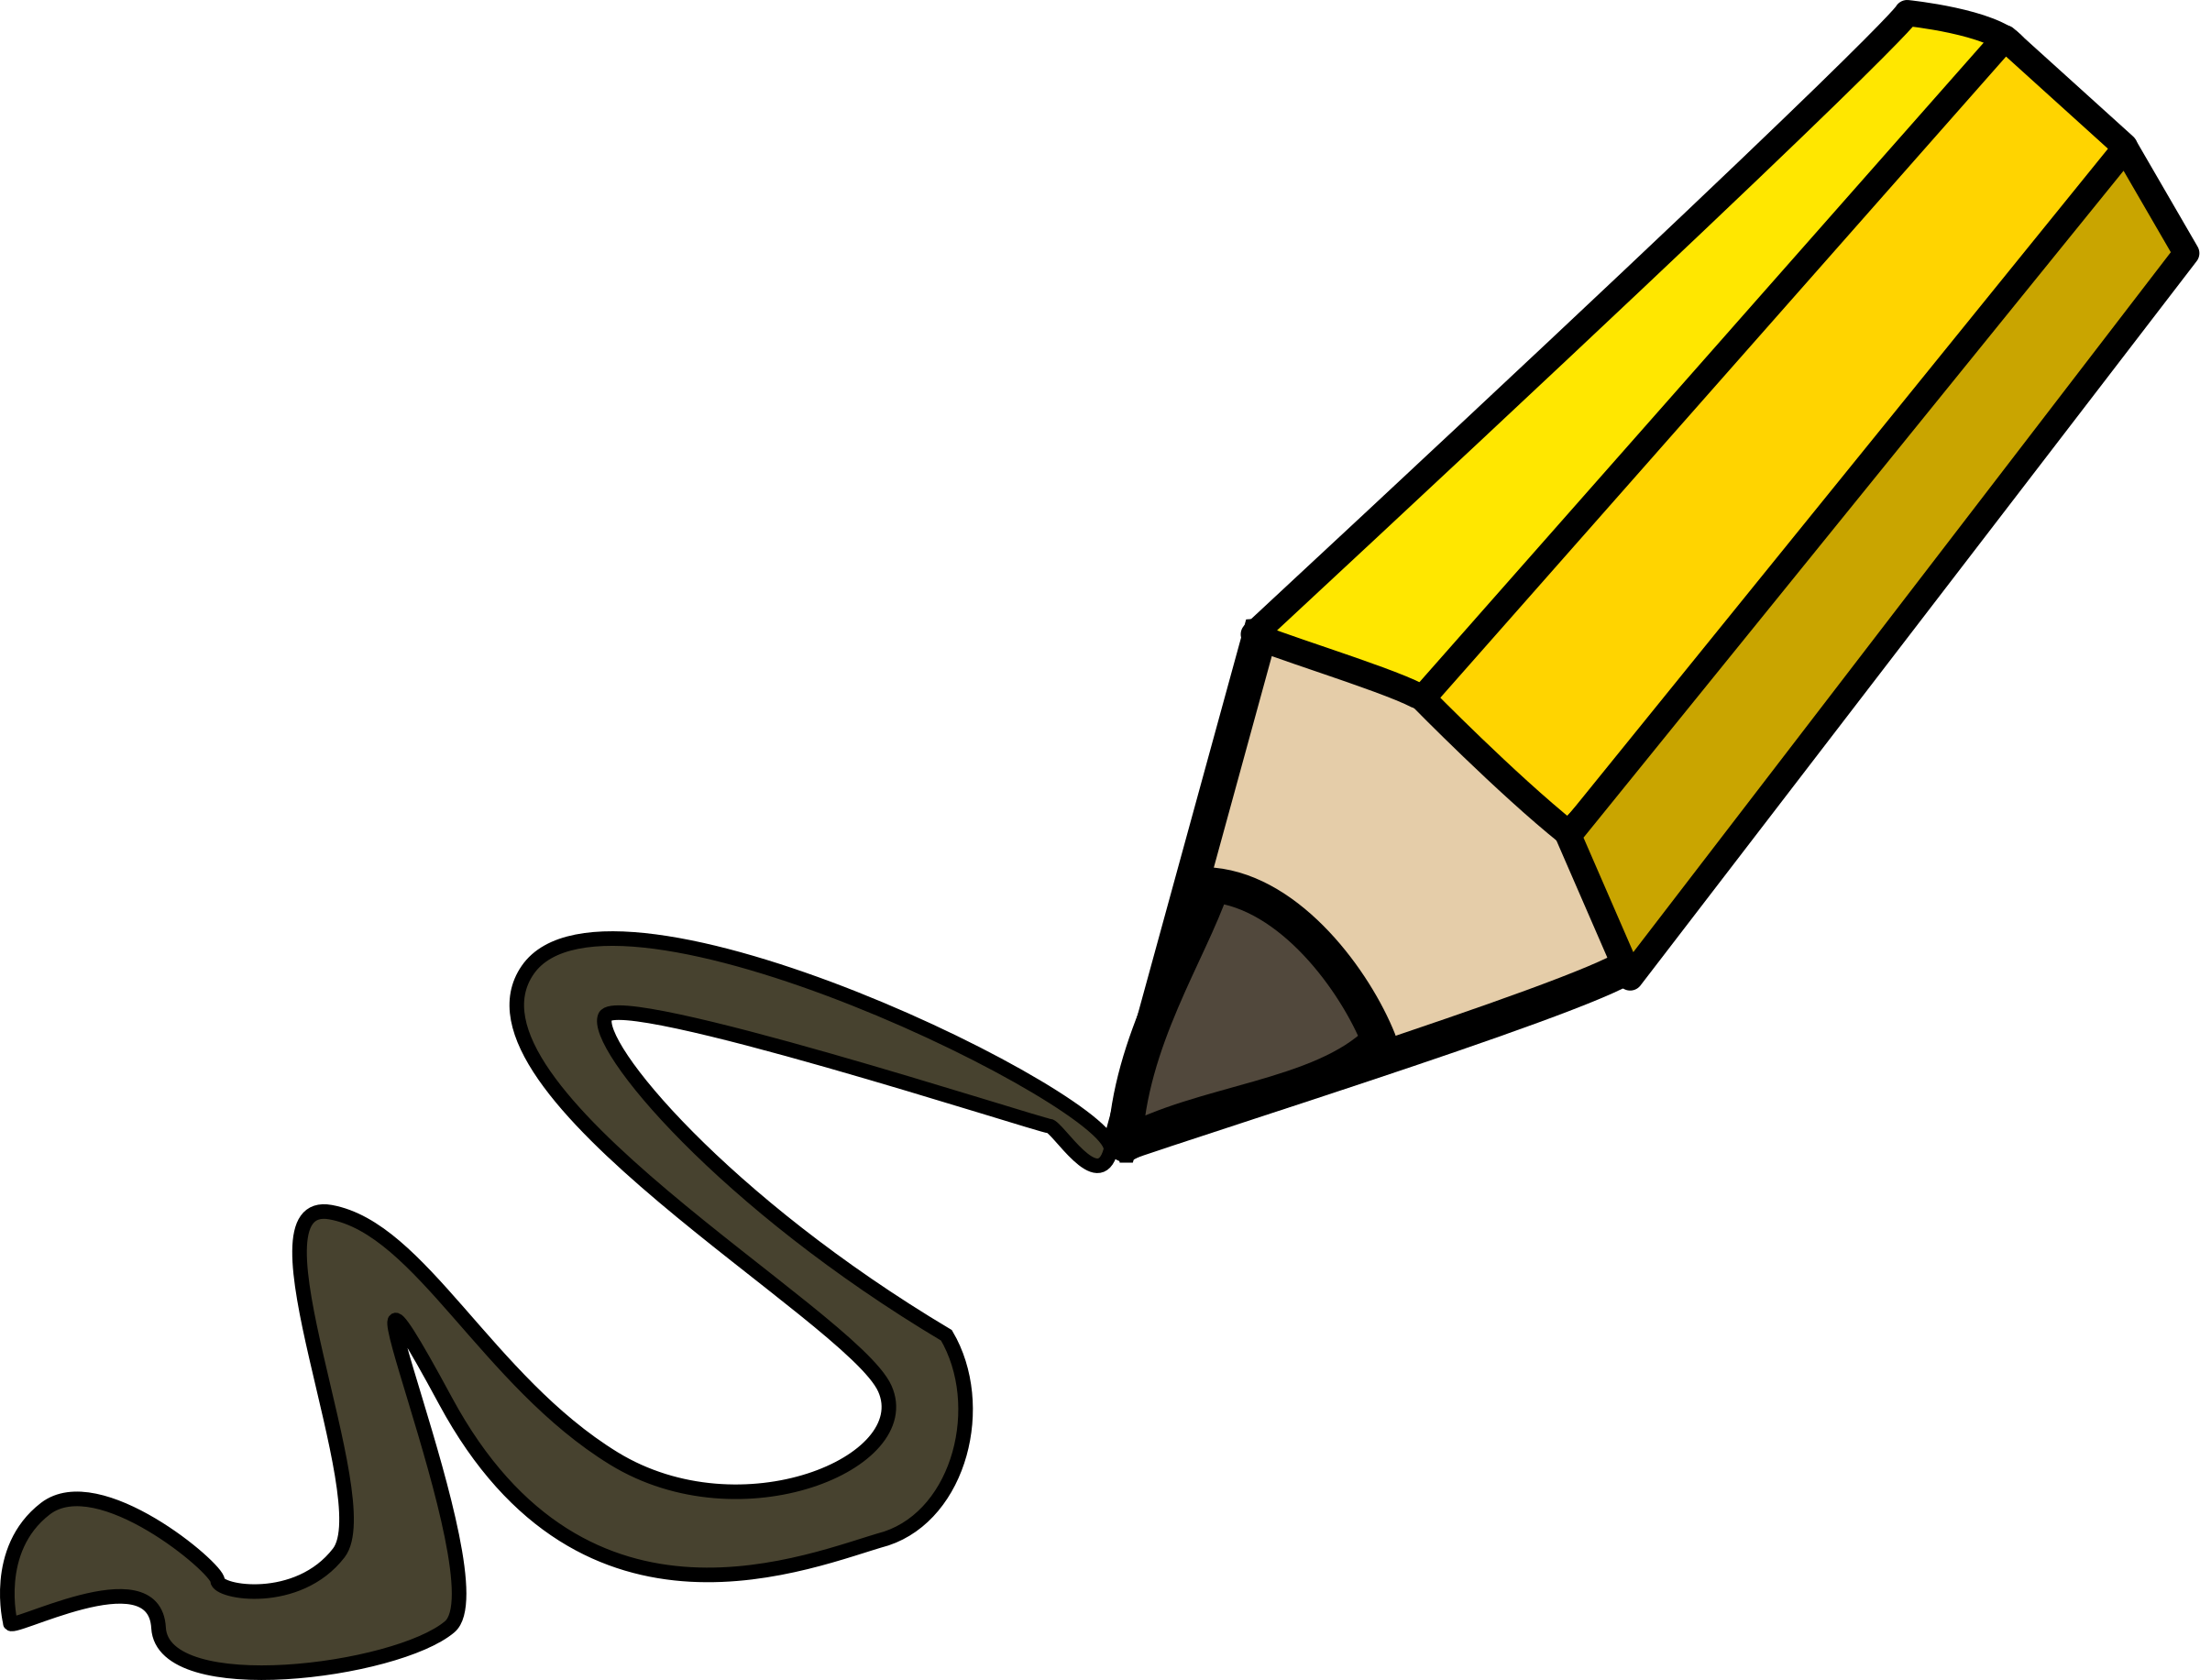 Pencil Clipart at GetDrawings